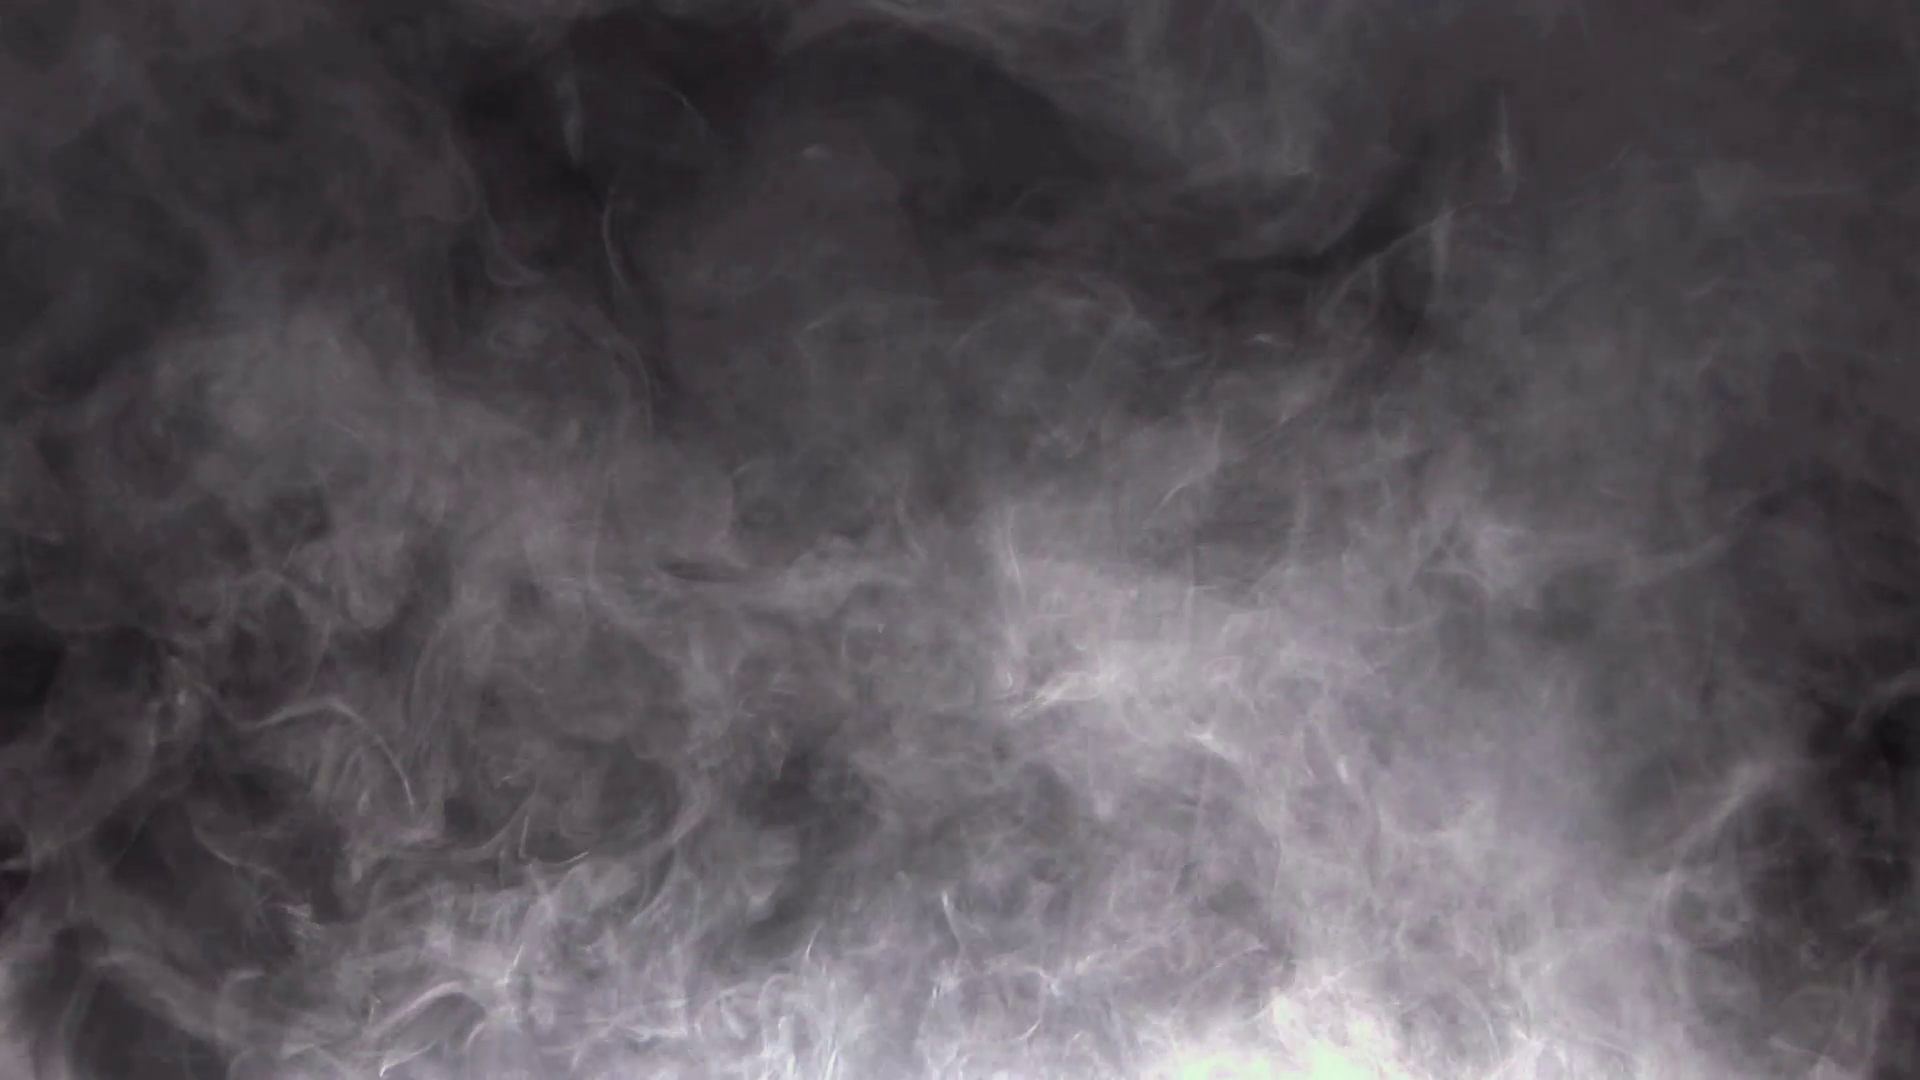 Smoke Rising Against Black Background Stock Video Footage - Videoblocks